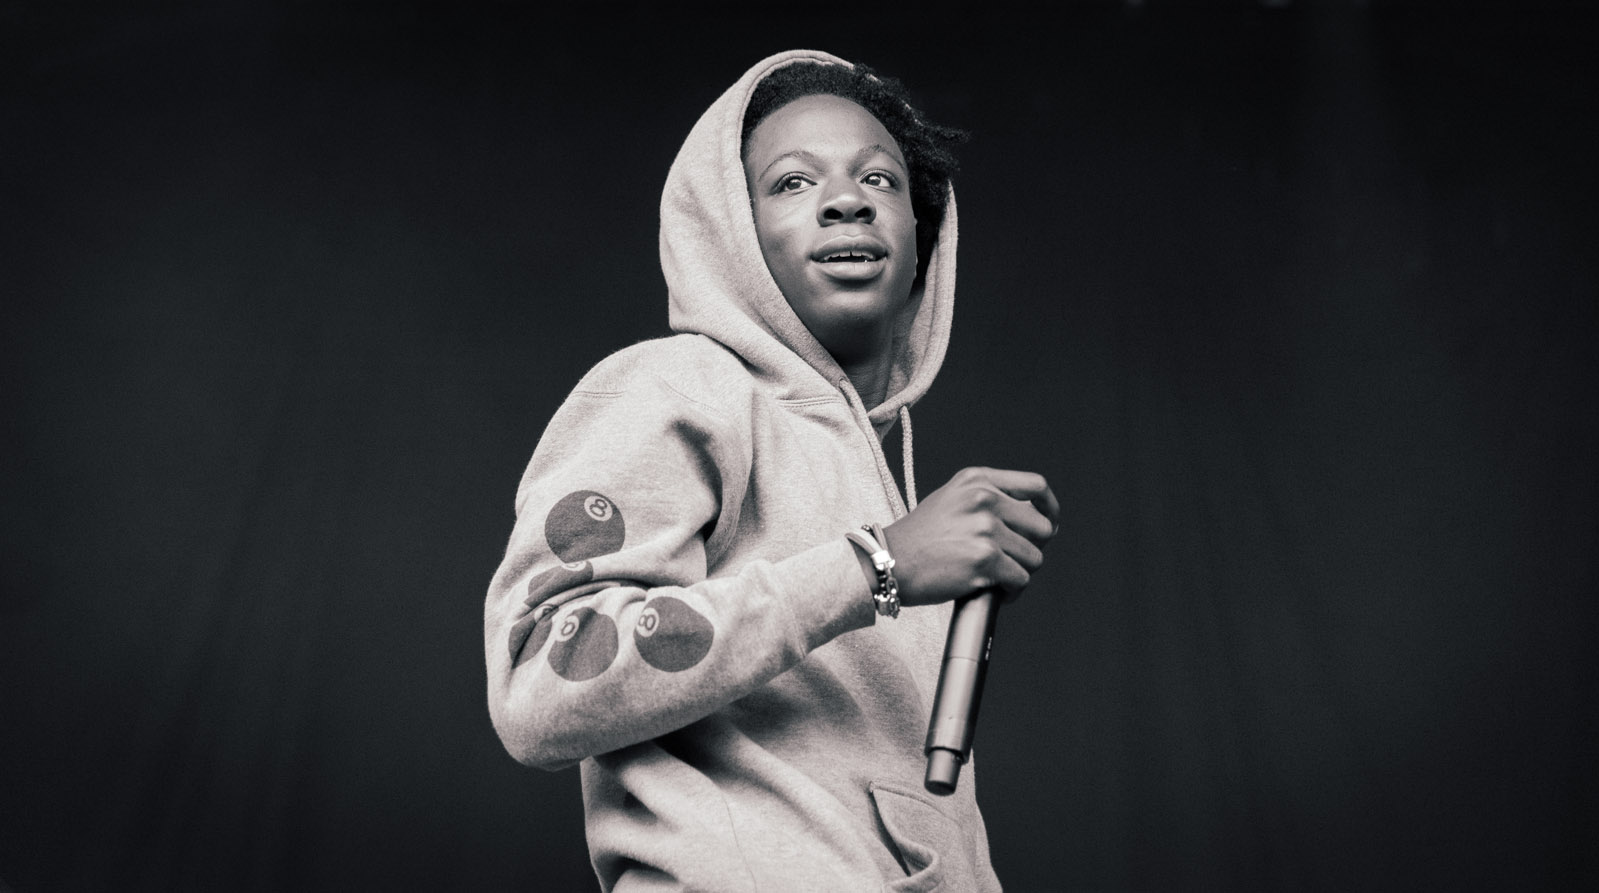 Joey_Badass_performing_at_Hovefestivalen_2013.jpg